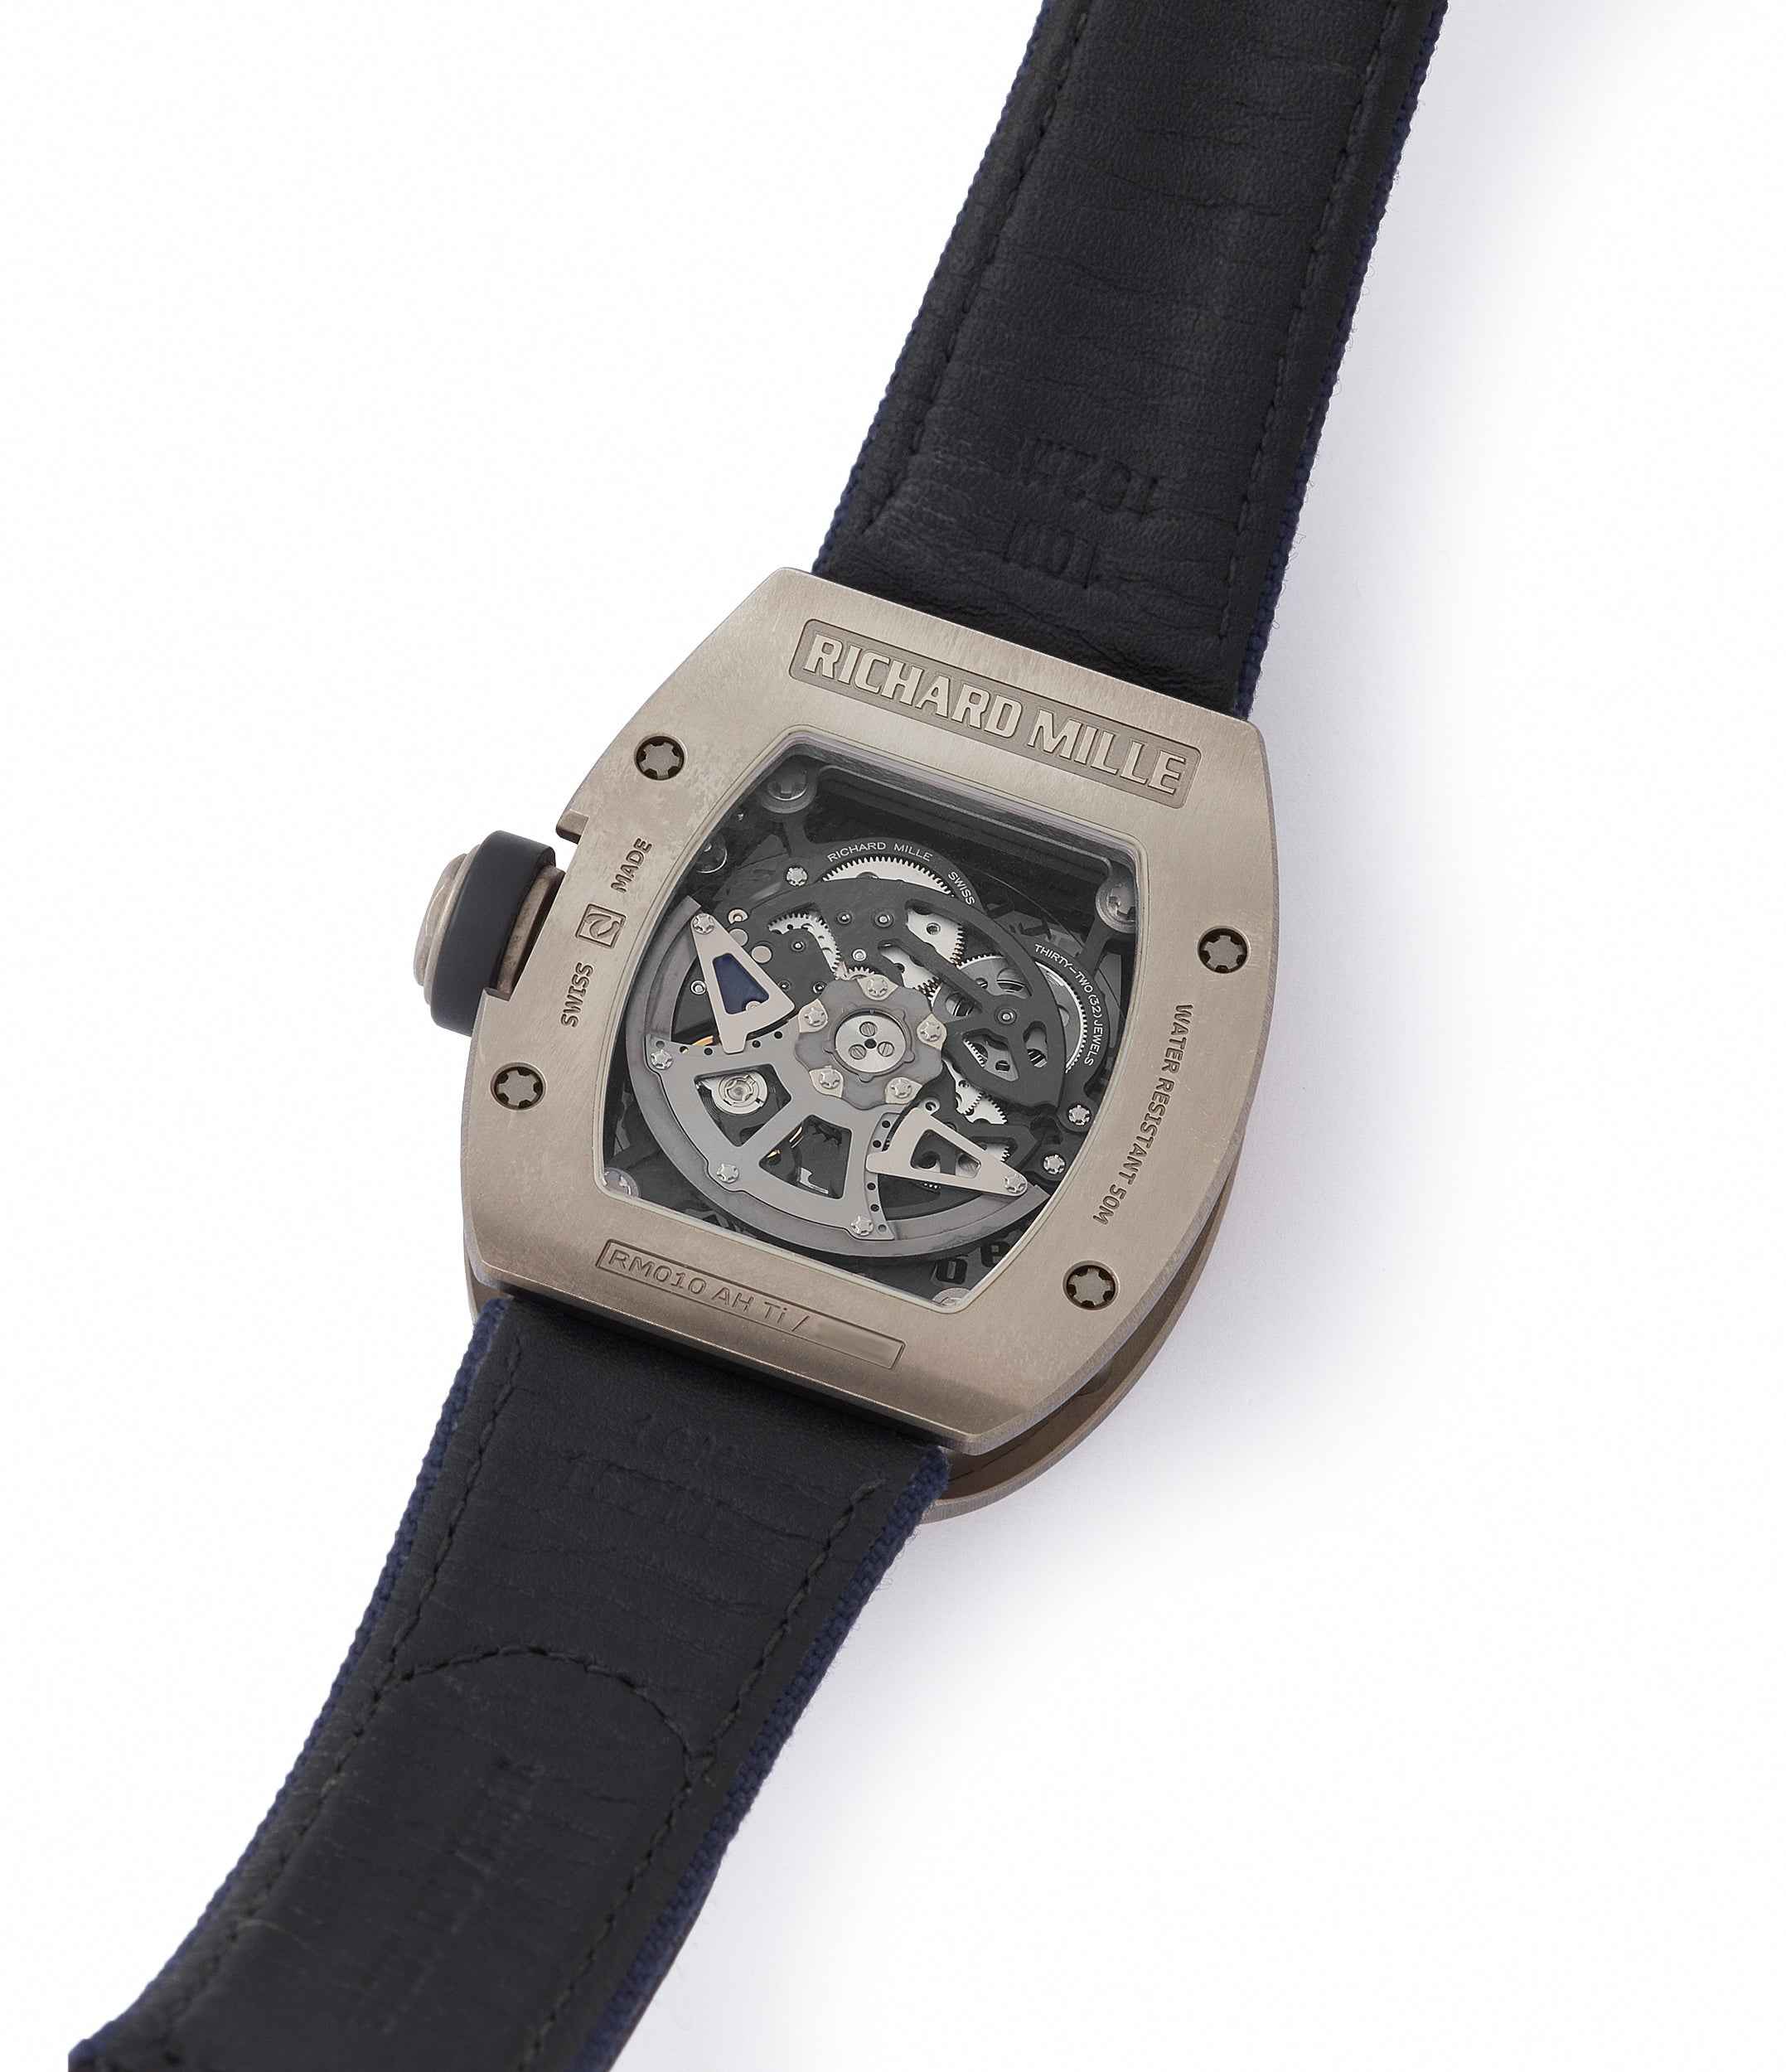 collect Richard Mille RM010 titanium rare luxury sport watch by independent watchmaker for sale online at A Collected Man London UK specialist of rare watches